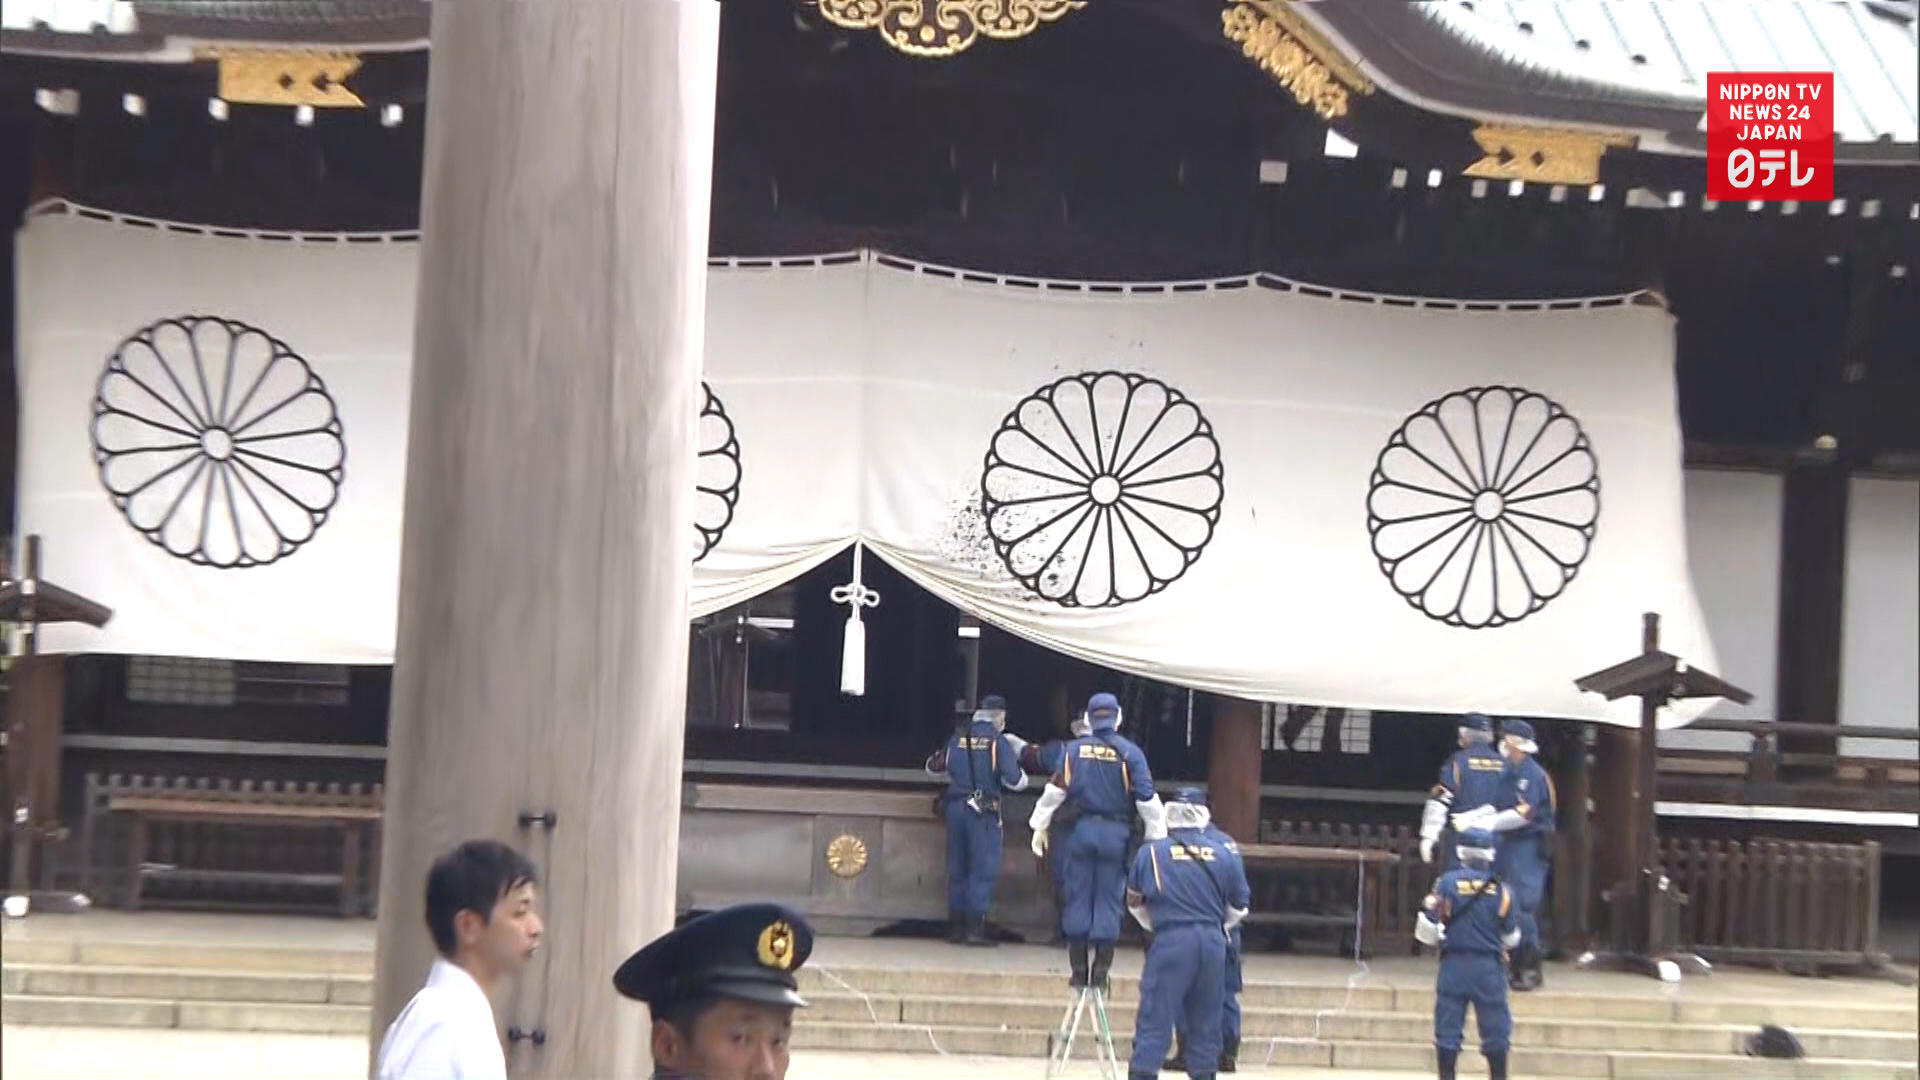 Chinese man vandalizes Yasukuni Shrine